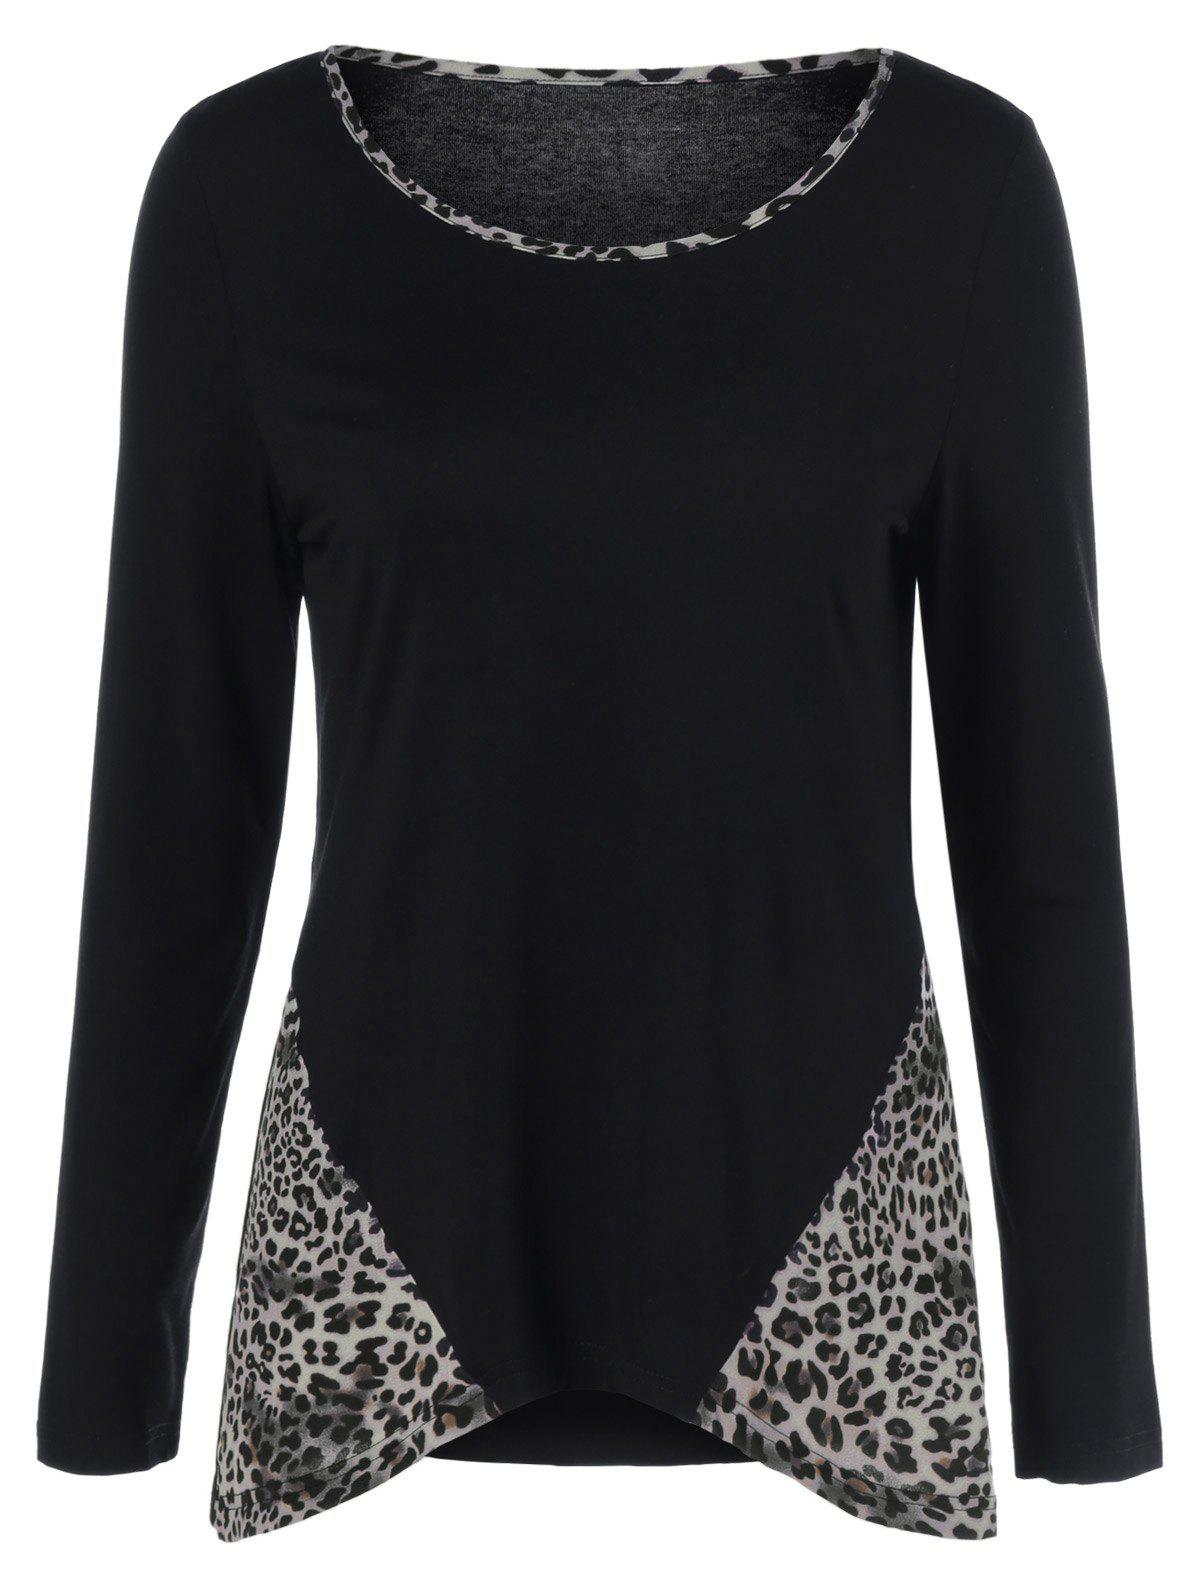 Leopard Trim Asymmetrical T-Shirt - BLACK L